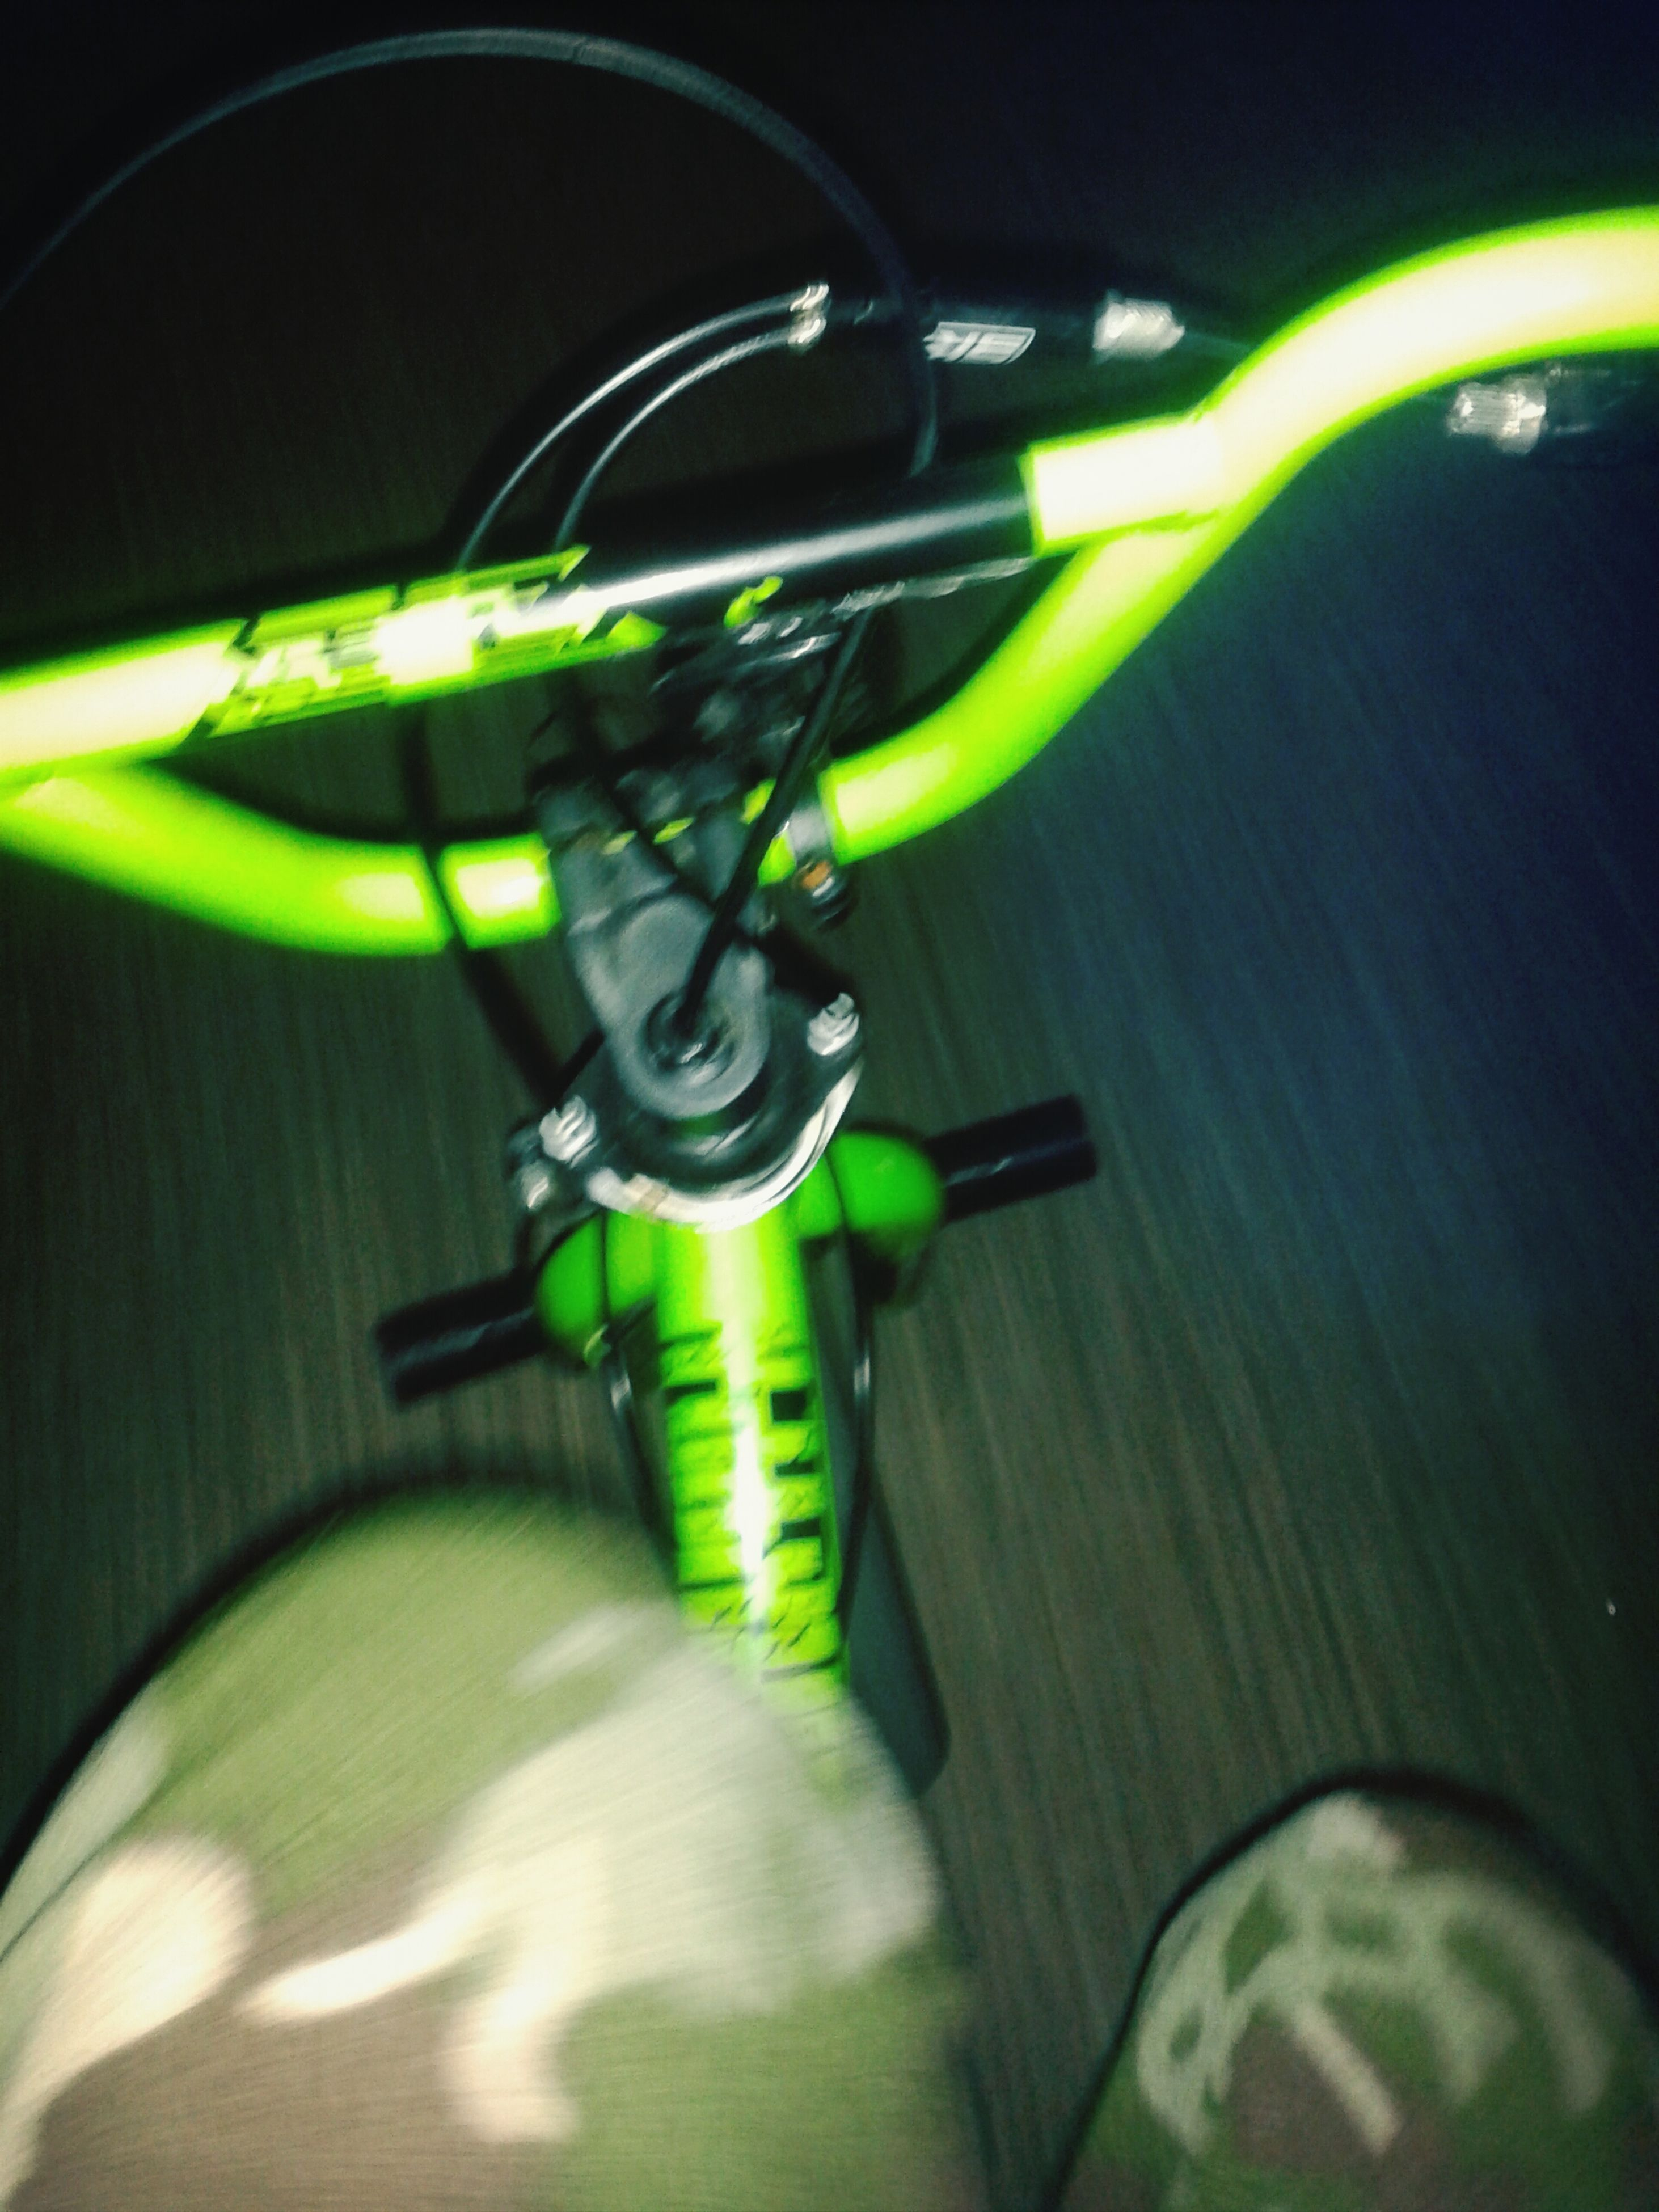 green color, indoors, night, bicycle, high angle view, sport, childhood, transportation, close-up, illuminated, circle, selective focus, shadow, land vehicle, toy, sunlight, still life